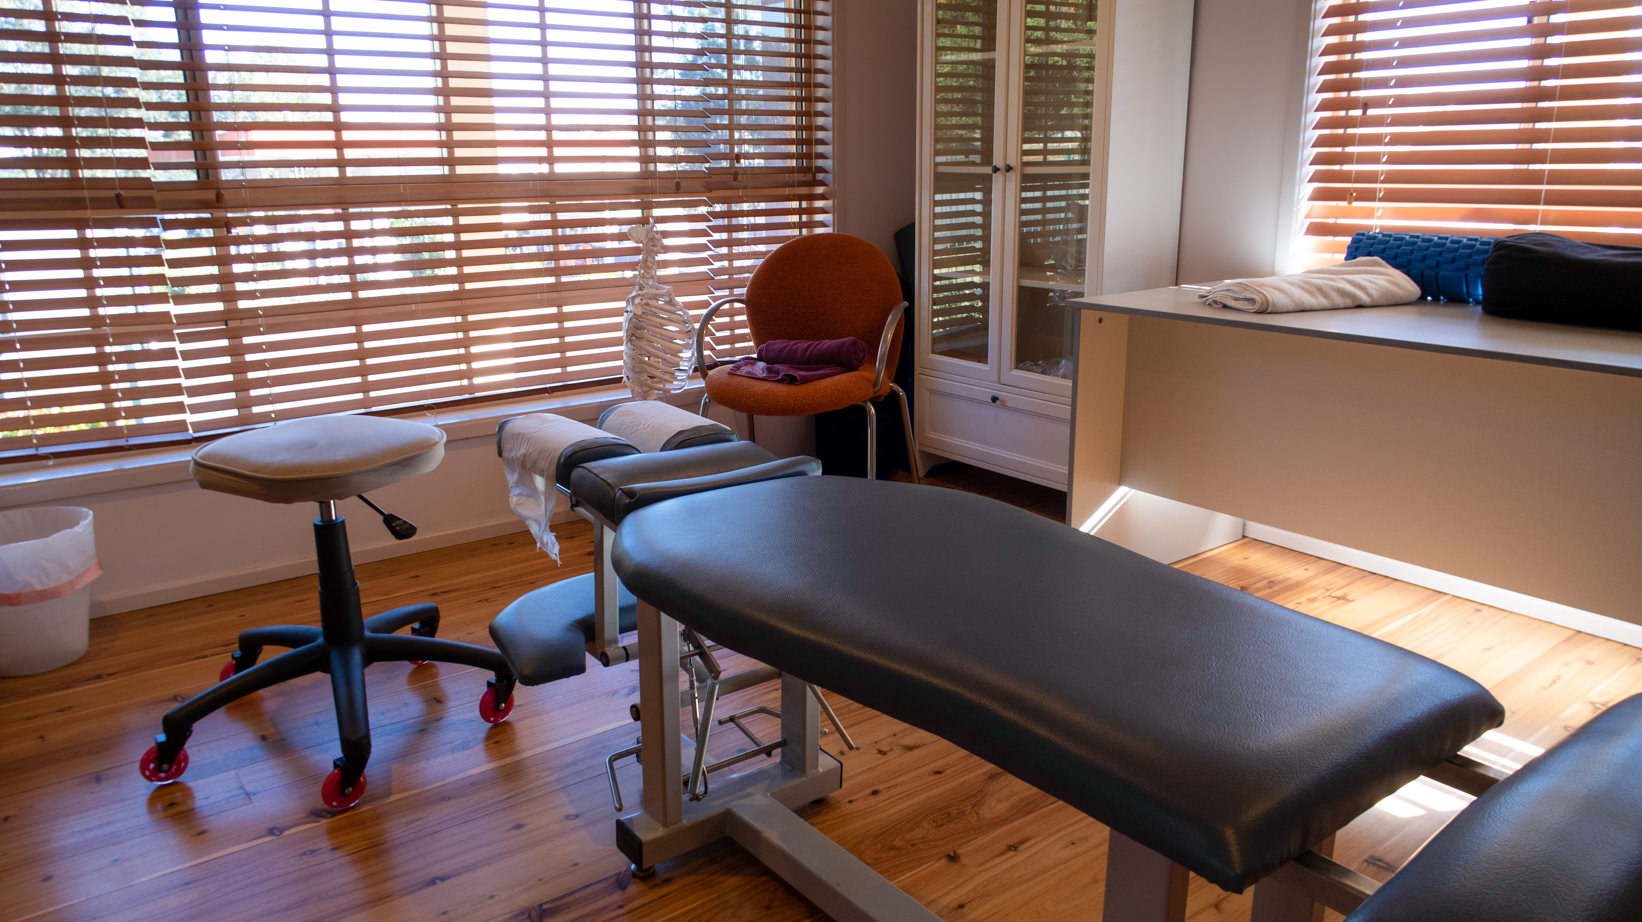 Tuggerah chiropractic treatment room